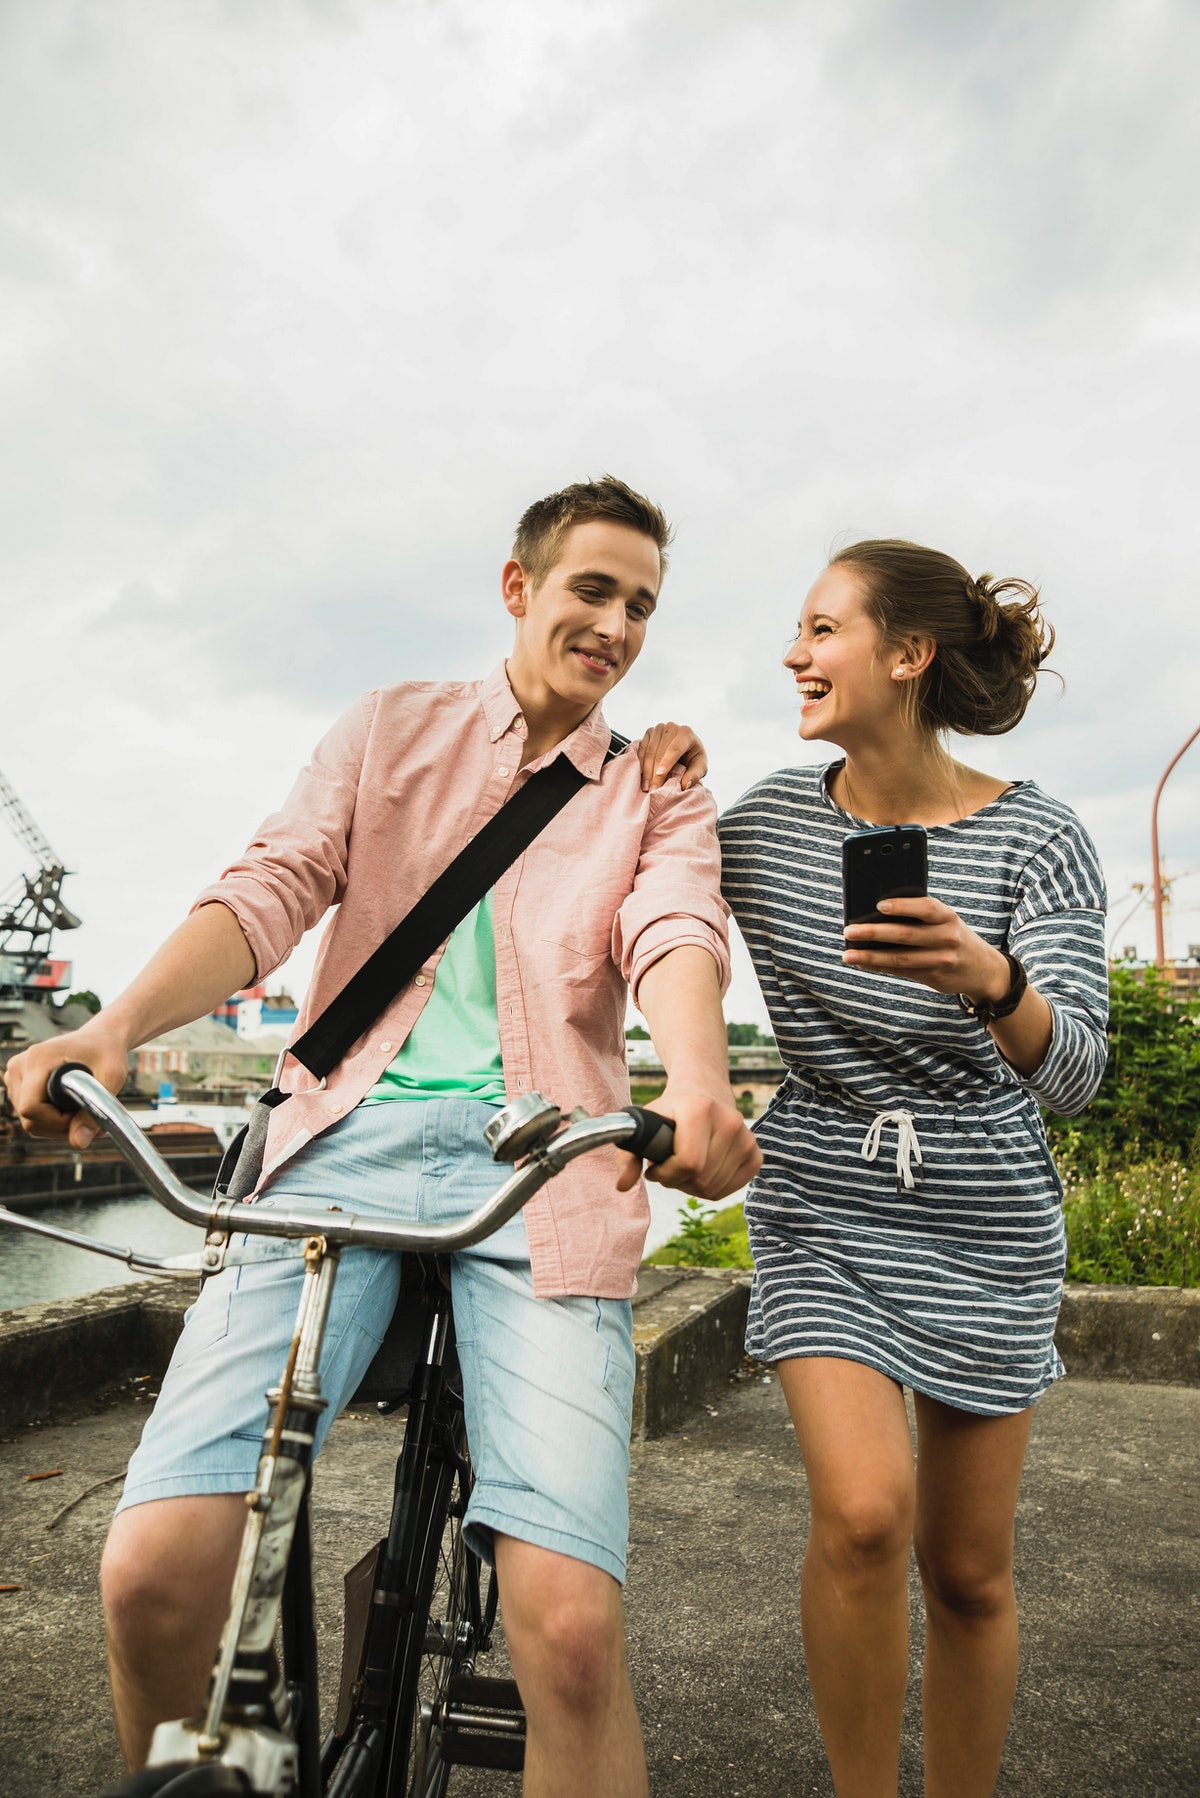 A young couple laughs at a phone while bike riding on a cloudy day.